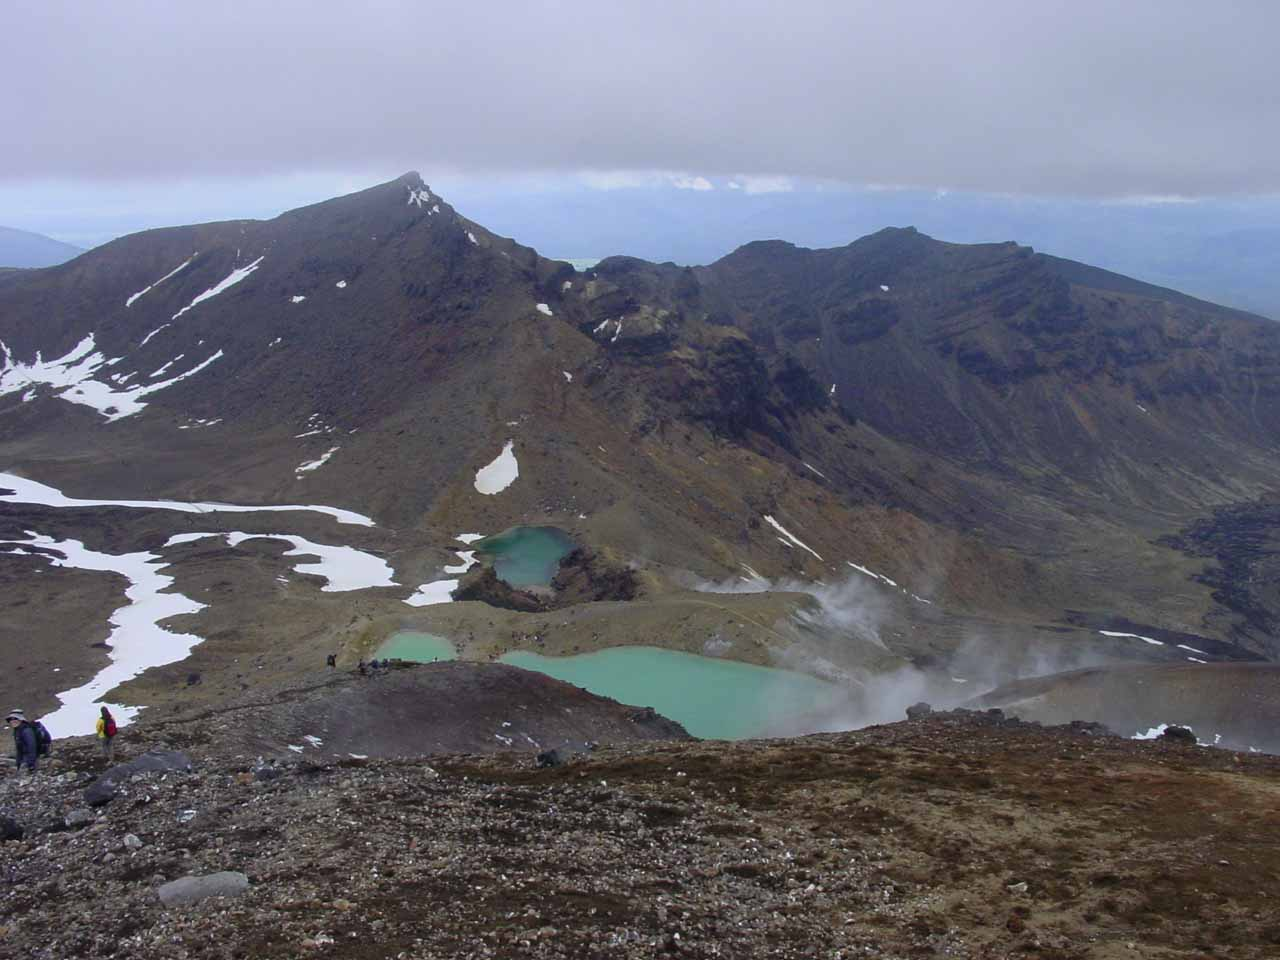 Quite possibly the most dramatic and popular day hike in New Zealand was the Tongariro Crossing, which was the quintessential Tongariro experience while the slopes of Ruapehu were lesser known